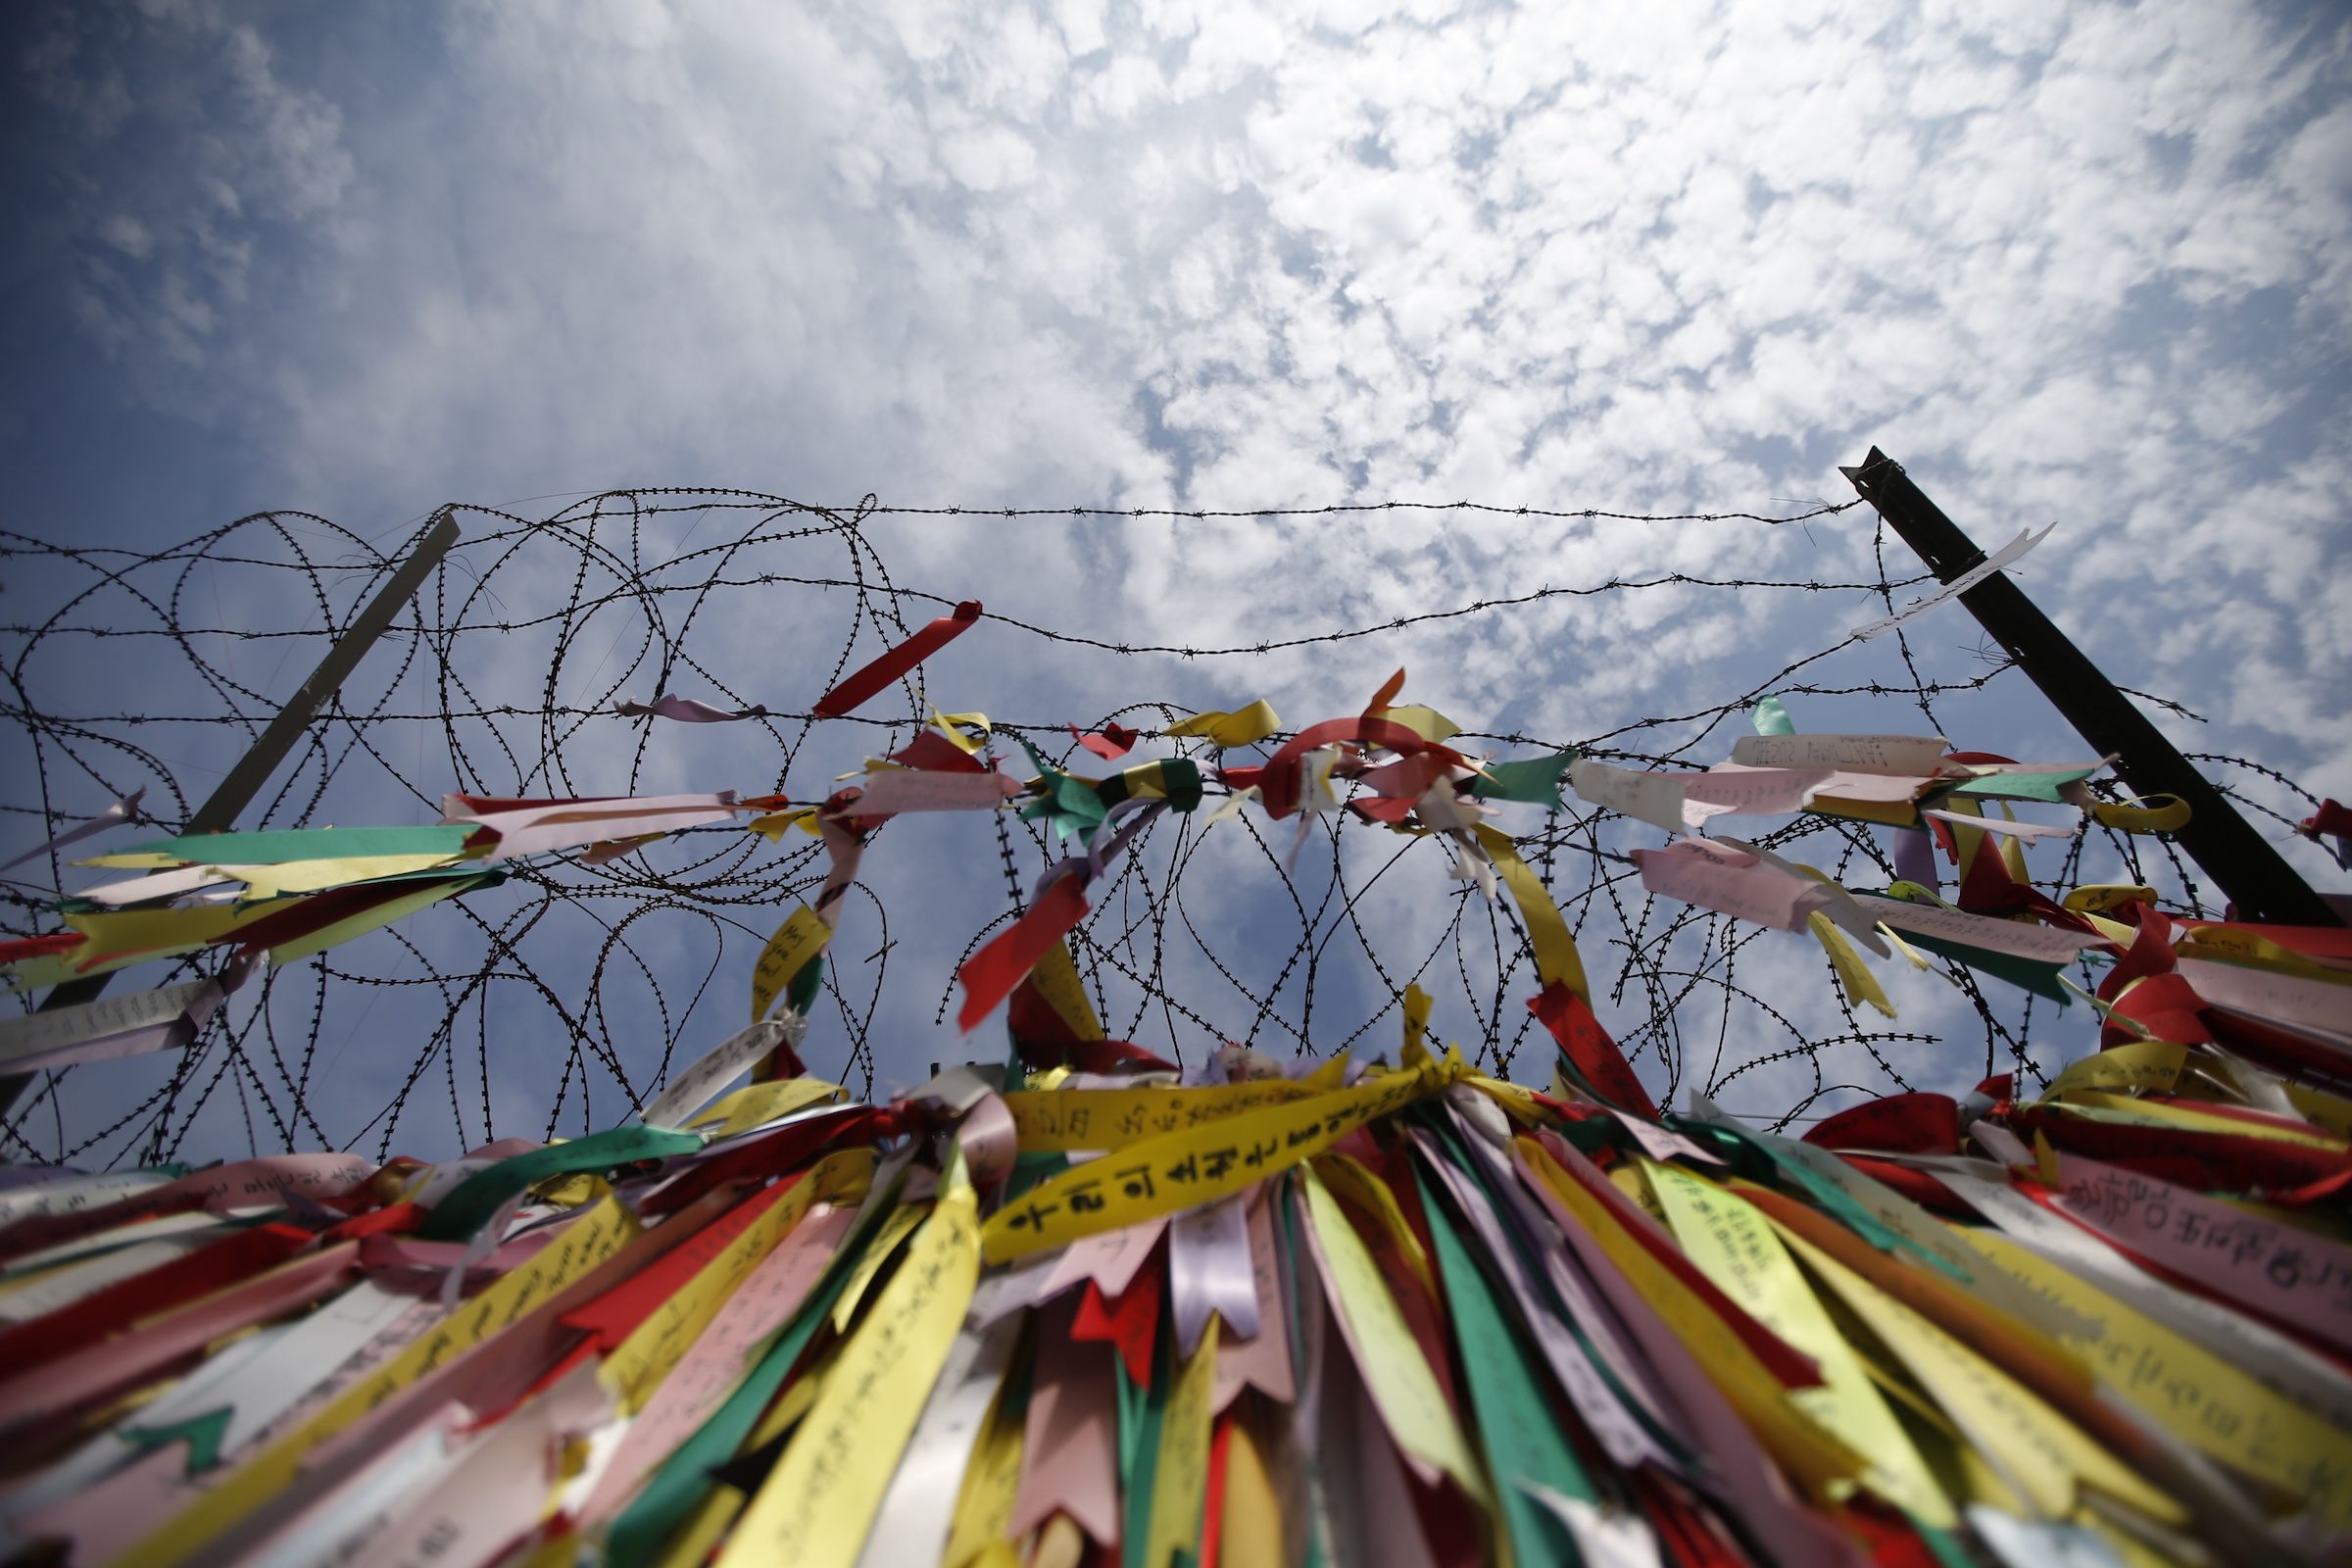 A barbed wire fence decorated with ribbons bearing messages wishing the unification of the two Koreas is pictured near the demilitarized zone which separates North and South Korea in Paju October 31, 2014. On the 25th anniversary of the fall of the Berlin Wall, there are still barriers separating communities around the world, from the barbed wire fence dividing the two Koreas, the fence around the Spanish enclave of Melilla, to the sectarian Peace Wall in Belfast, the Israel-Gaza barrier and the border separating Mexico from the United States. Picture taken October 31, 2014.  REUTERS/Kim Hong-Ji (SOUTH KOREA - Tags: ANNIVERSARY CIVIL UNREST POLITICS SOCIETY)  ATTENTION EDITORS: PICTURE 18 OF 28 FOR WIDER IMAGE PACKAGE 'THE WALLS THAT DIVIDE' TO FIND ALL IMAGES SEARCH 'WALLS DIVIDE' - RTR4D2WH